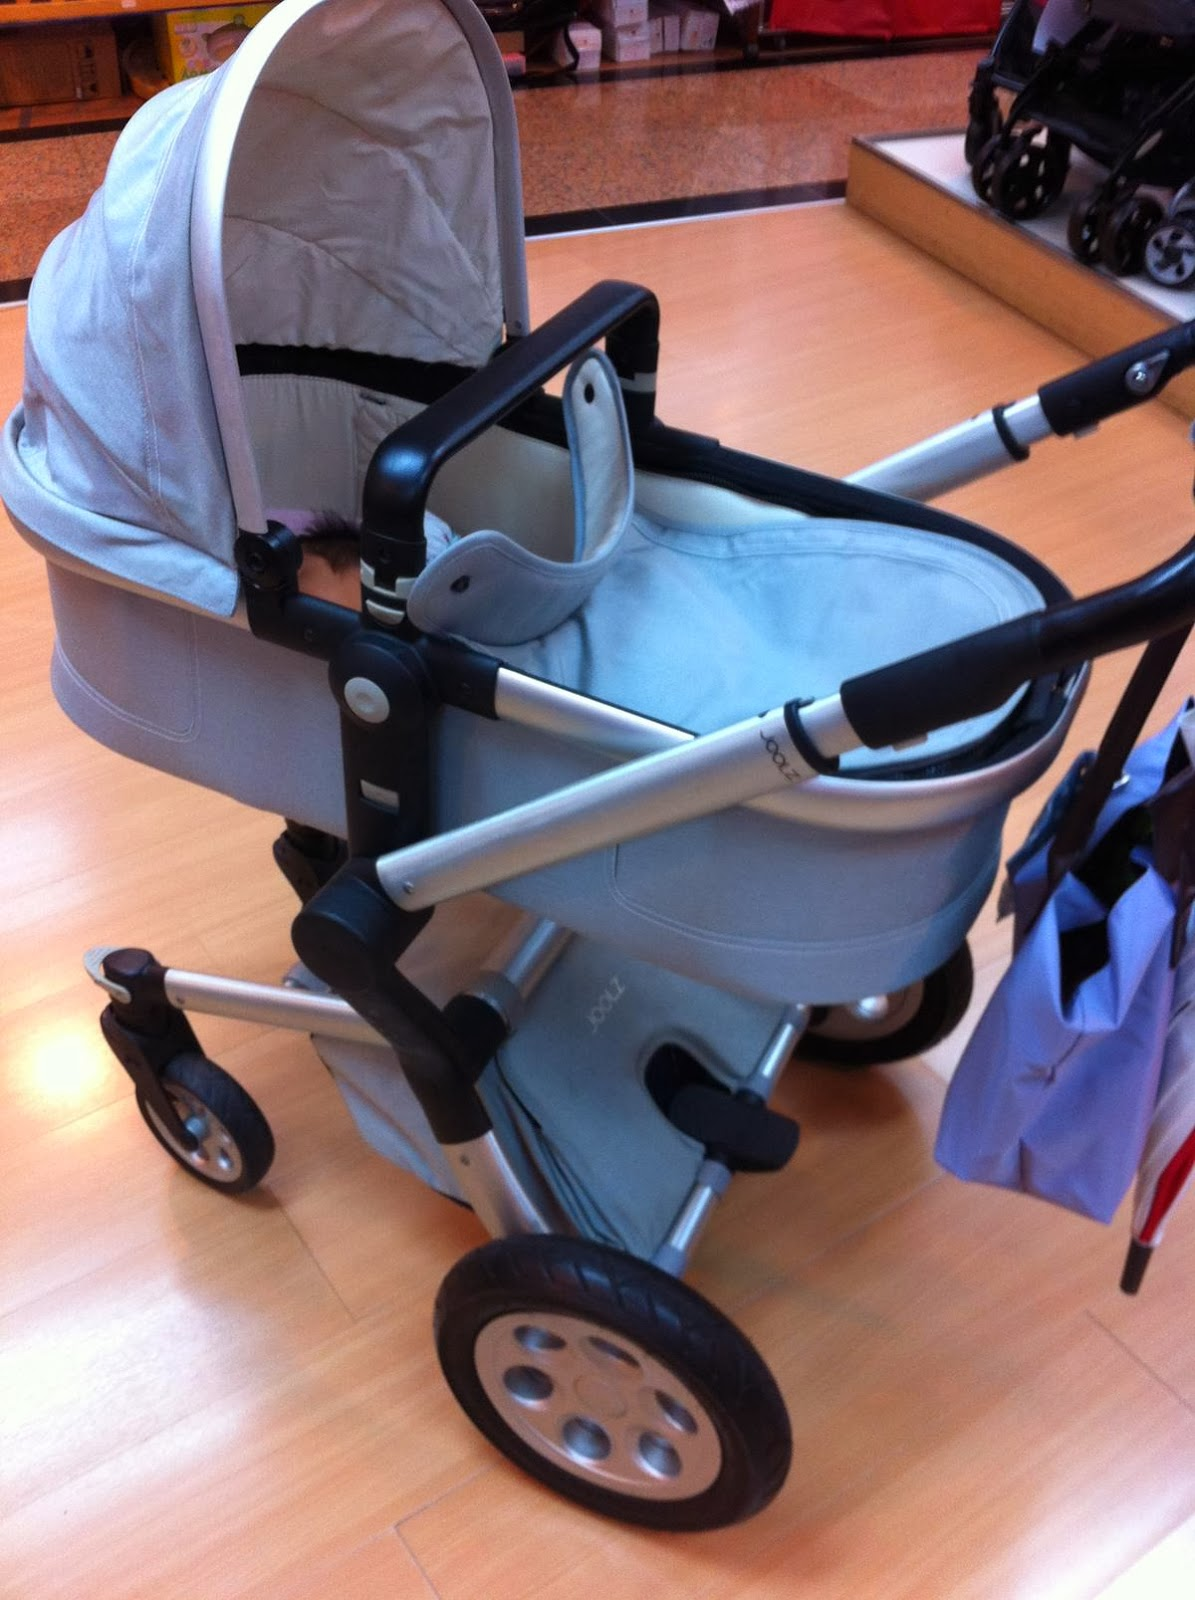 The Joolz Stroller Joolz Stroller Review